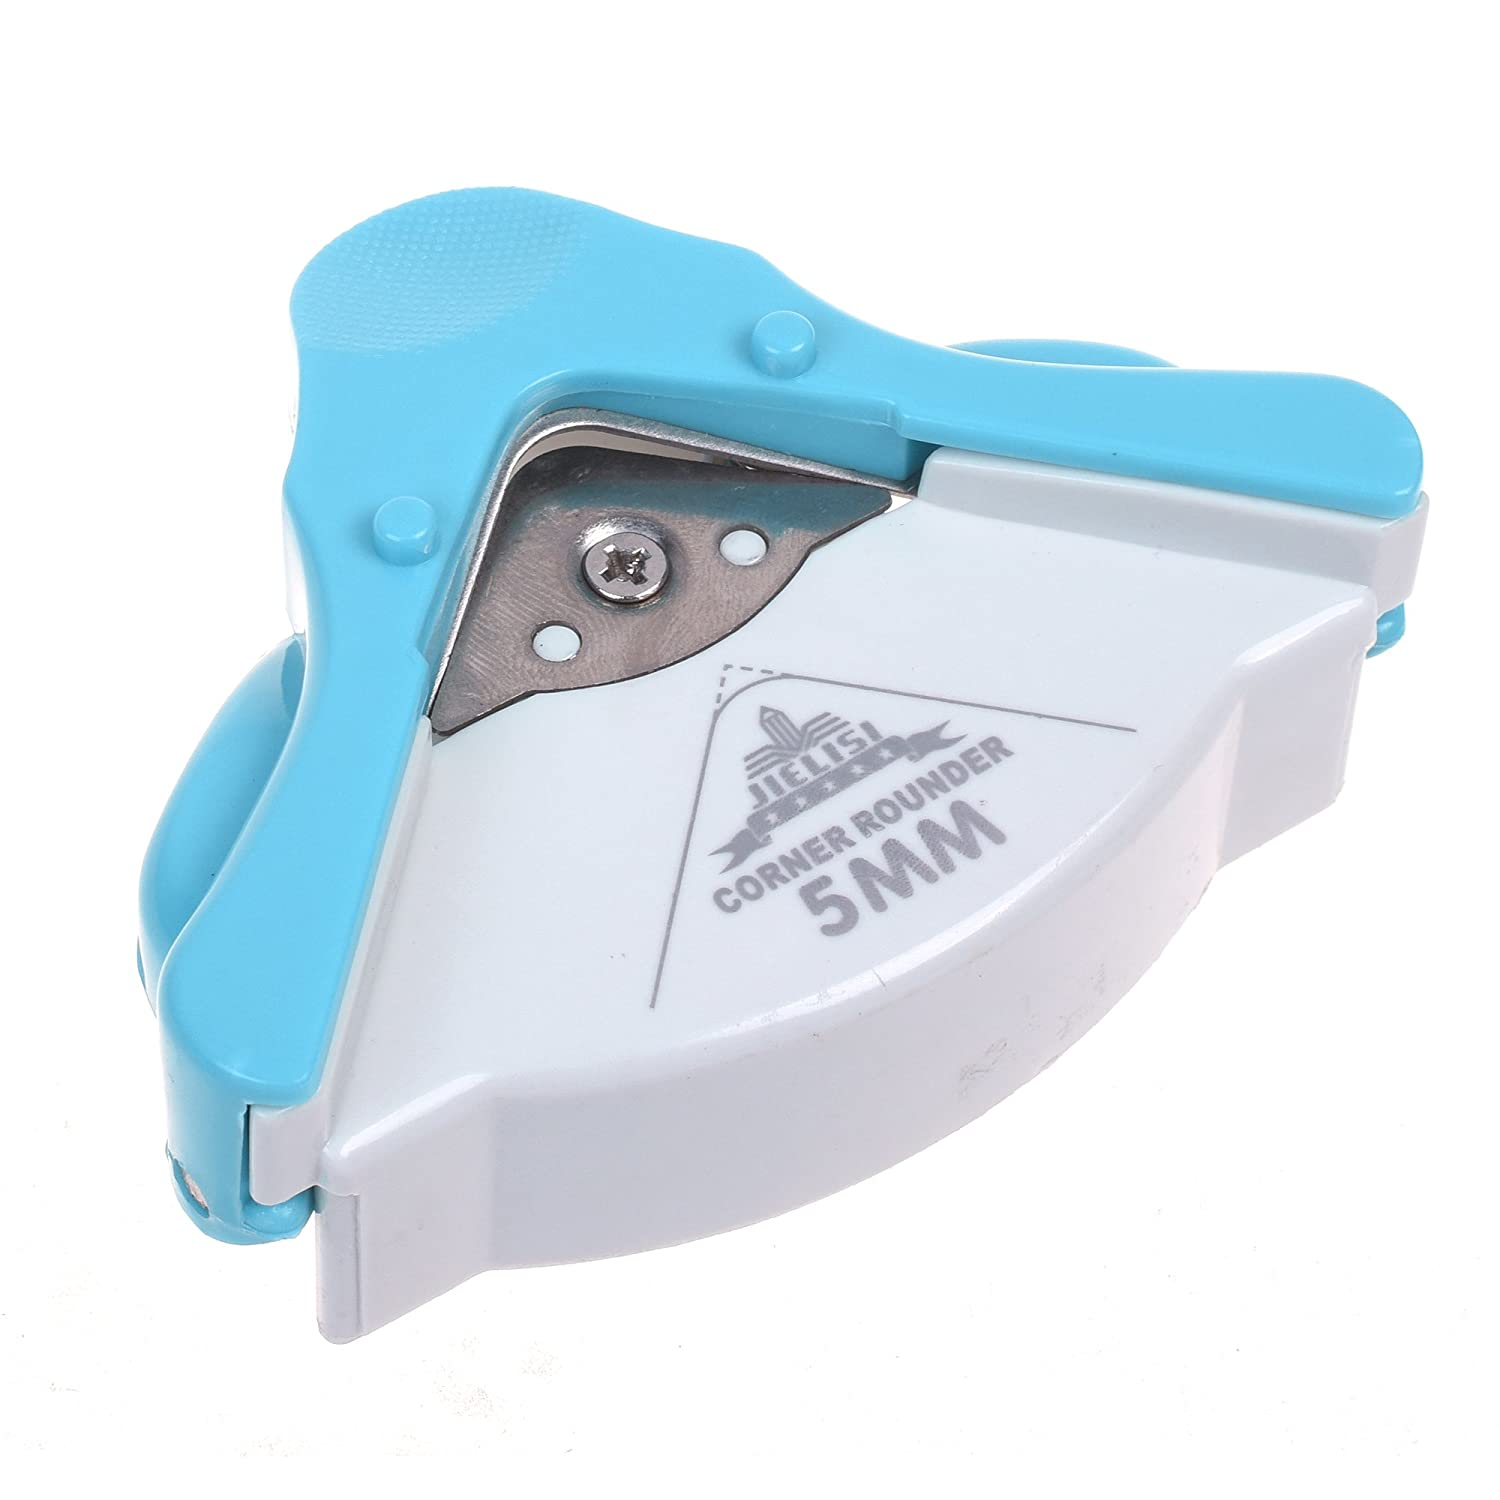 BCP Corner Cutter R5 R5mm for Trimming Sharp Round Corner Cartons, Photos, Paper